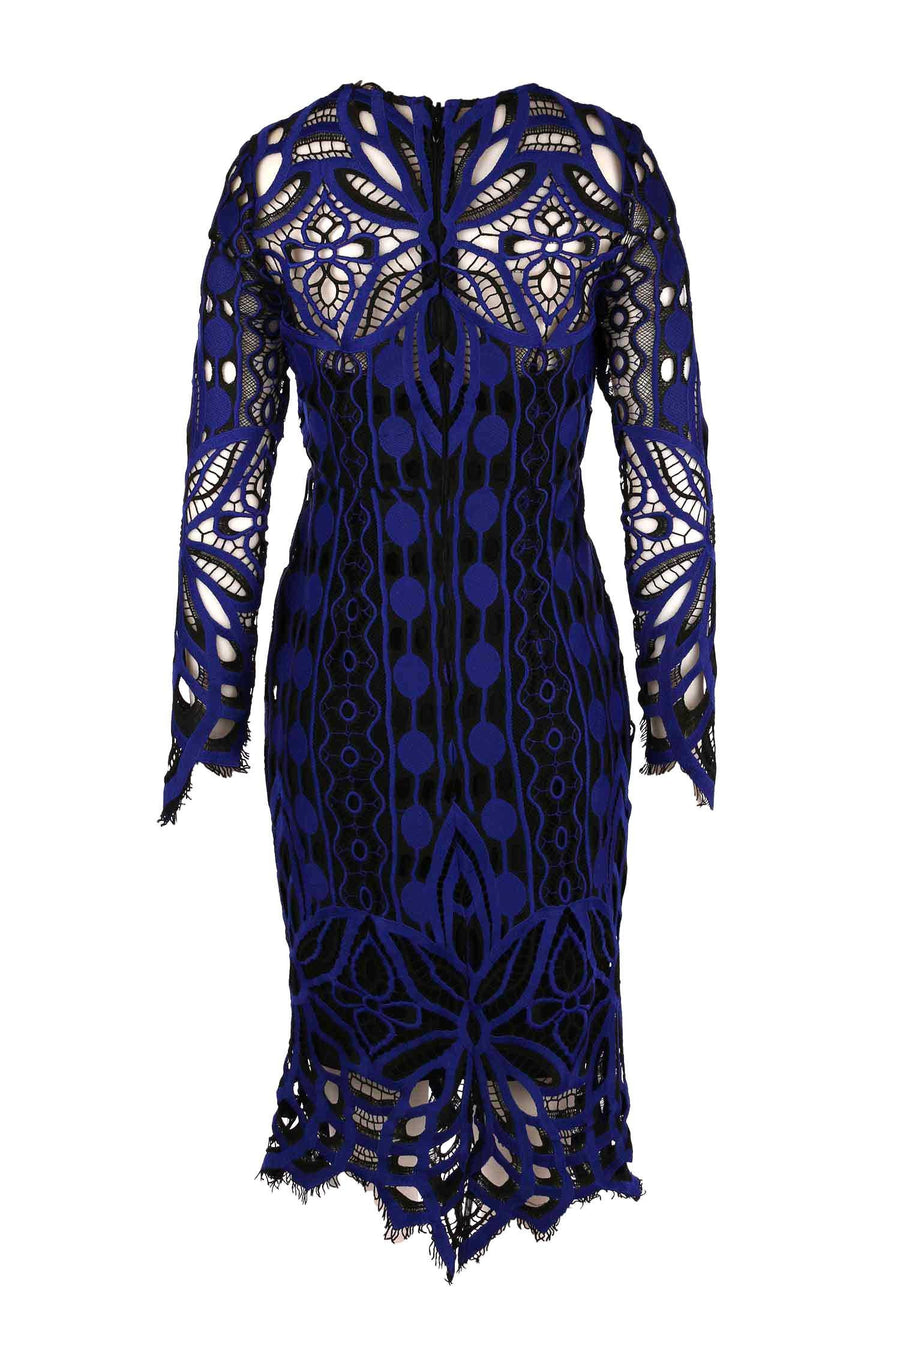 The Night Lace Dress by Thurley